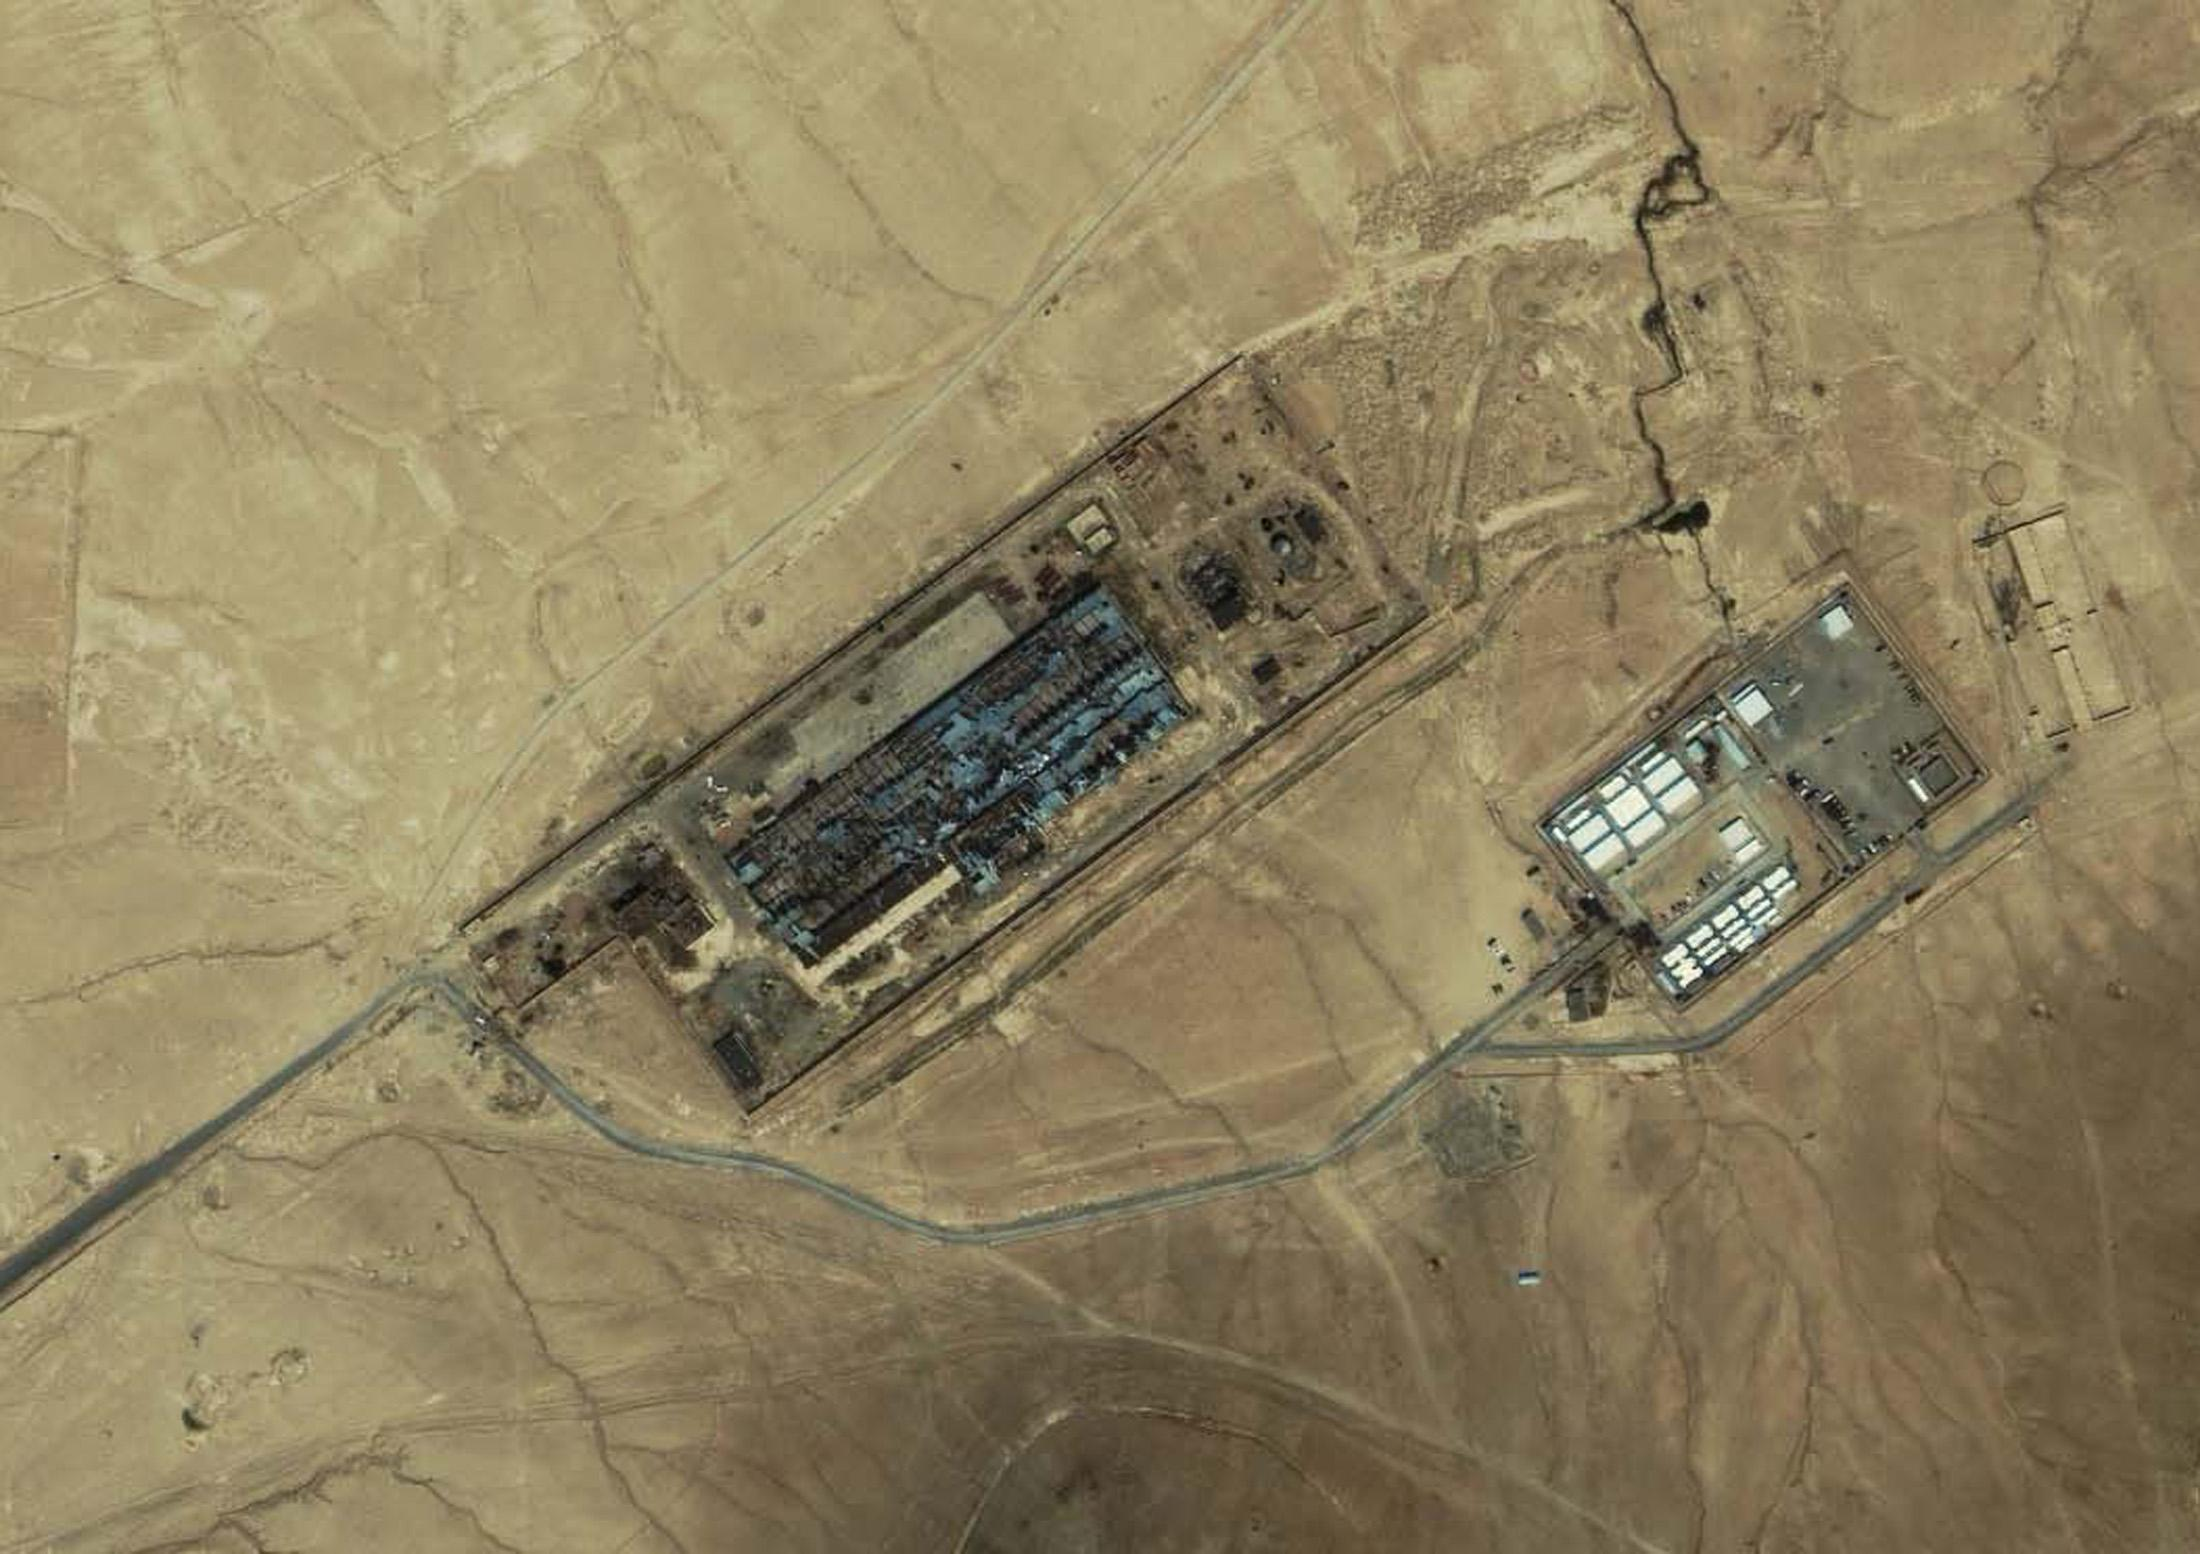 Satellite Black Site Image